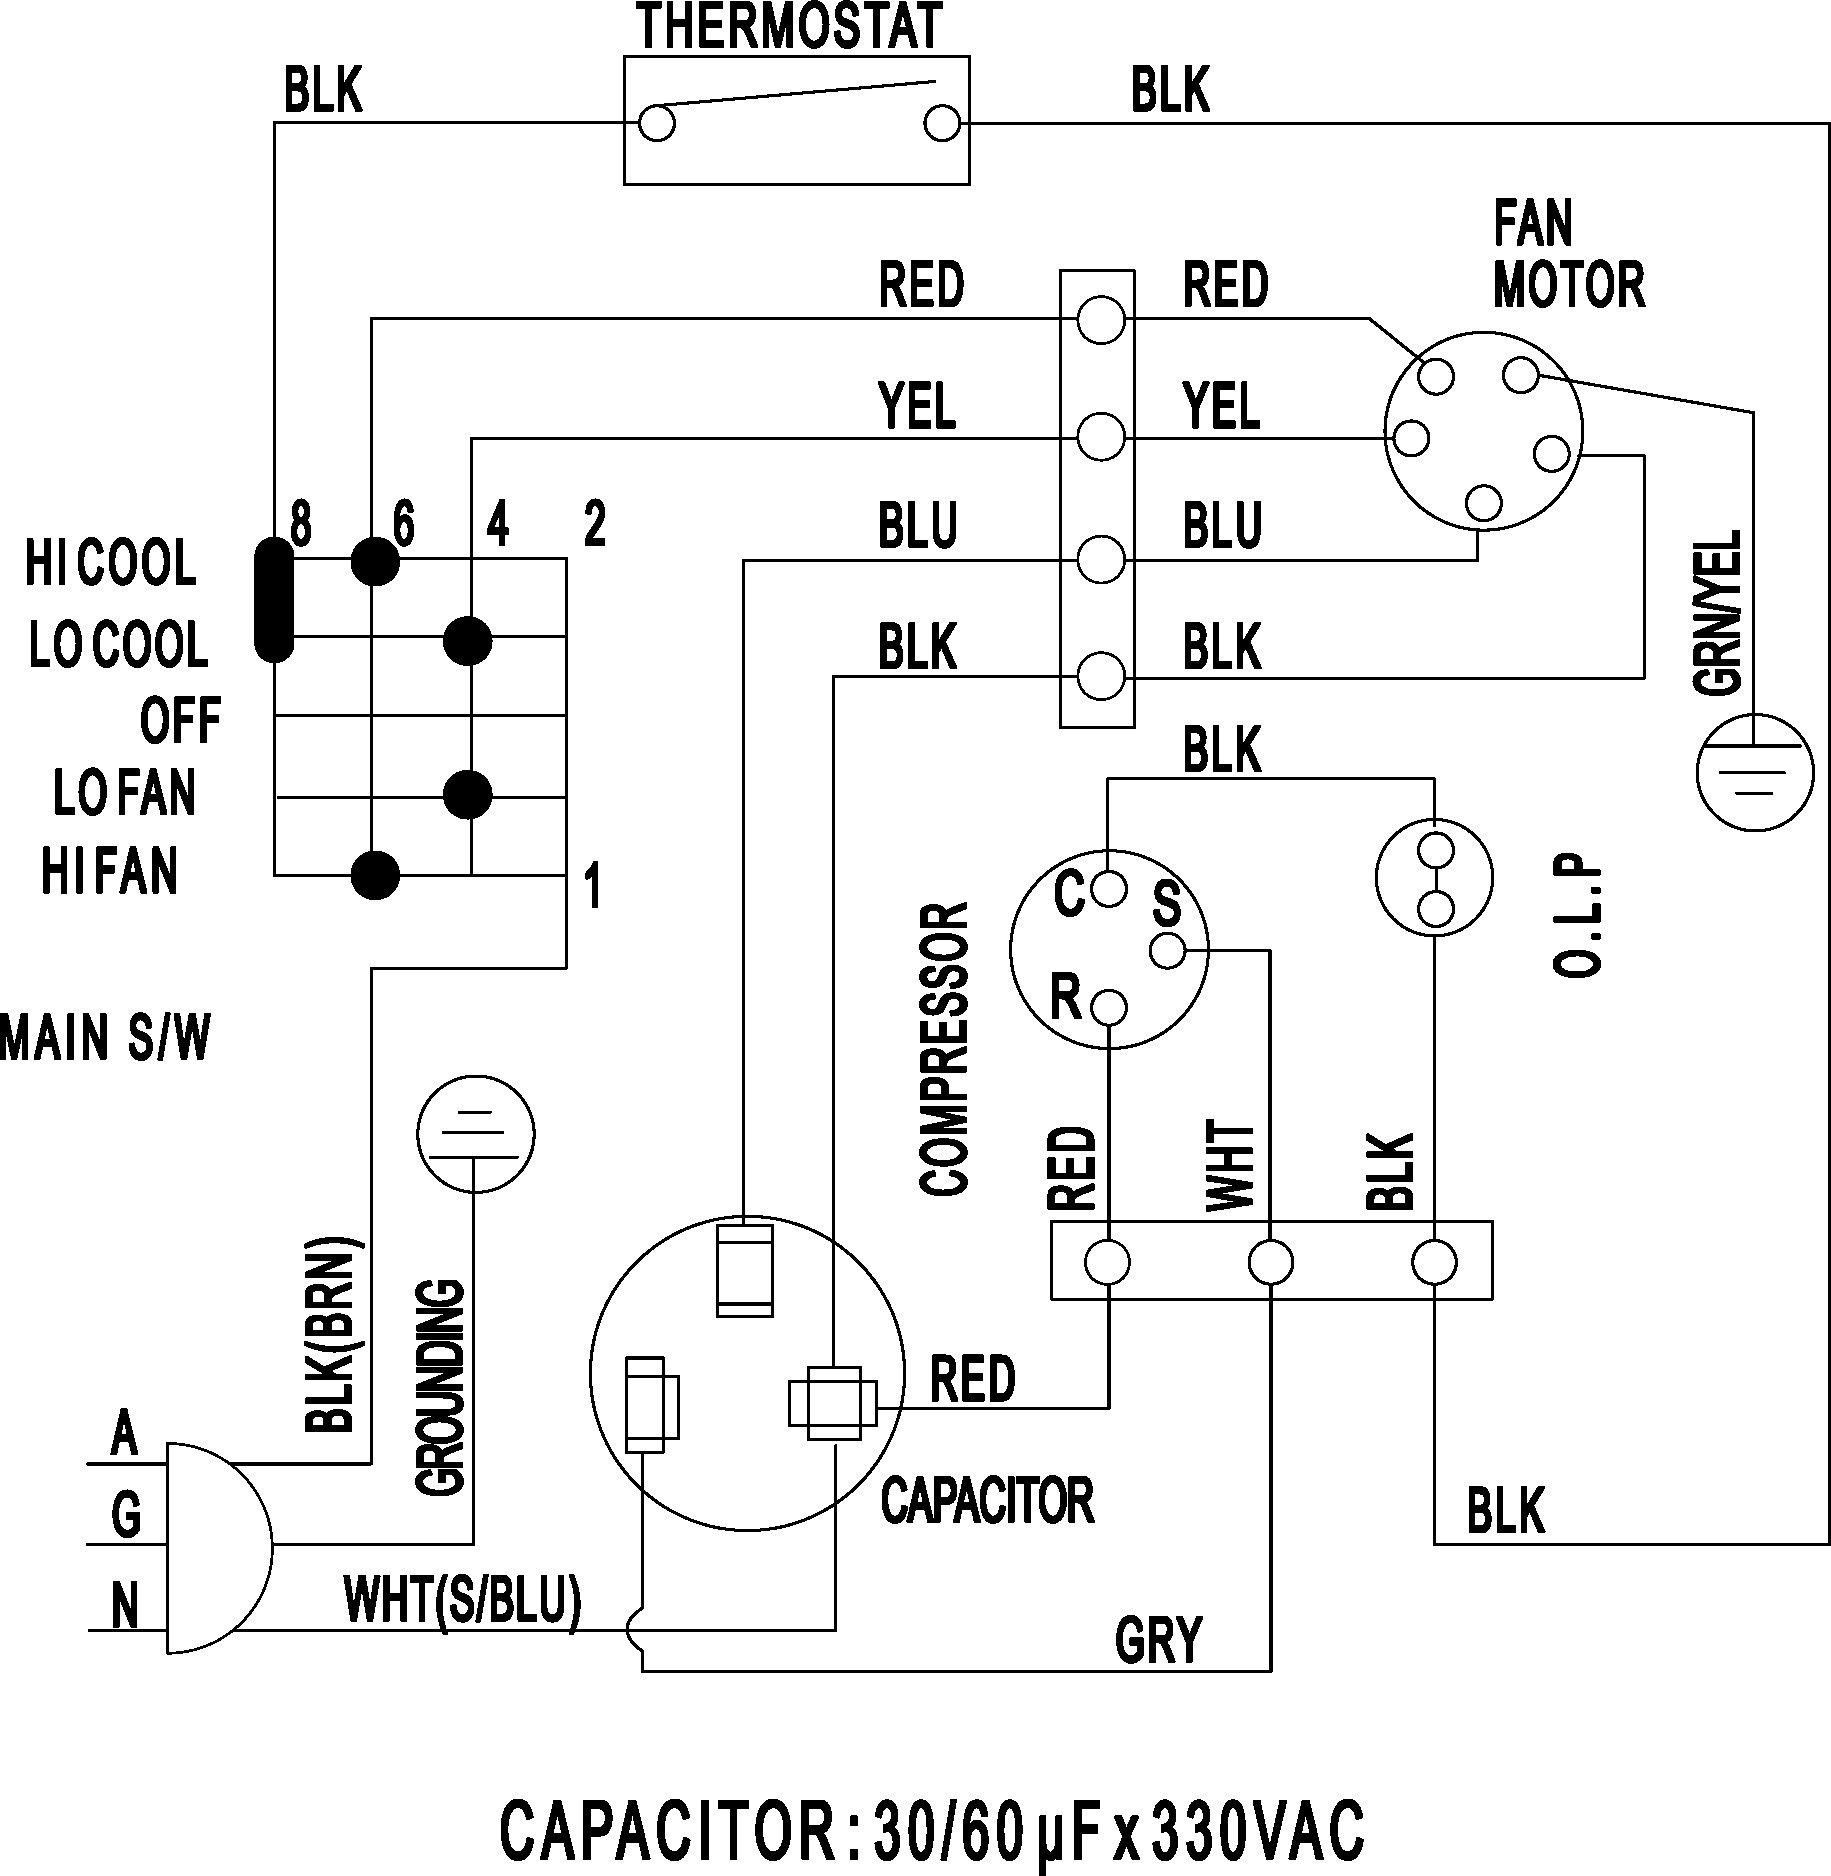 Ac Fan Relay Wiring Diagram | Wiring Diagram Wiring Diagram Hvac on